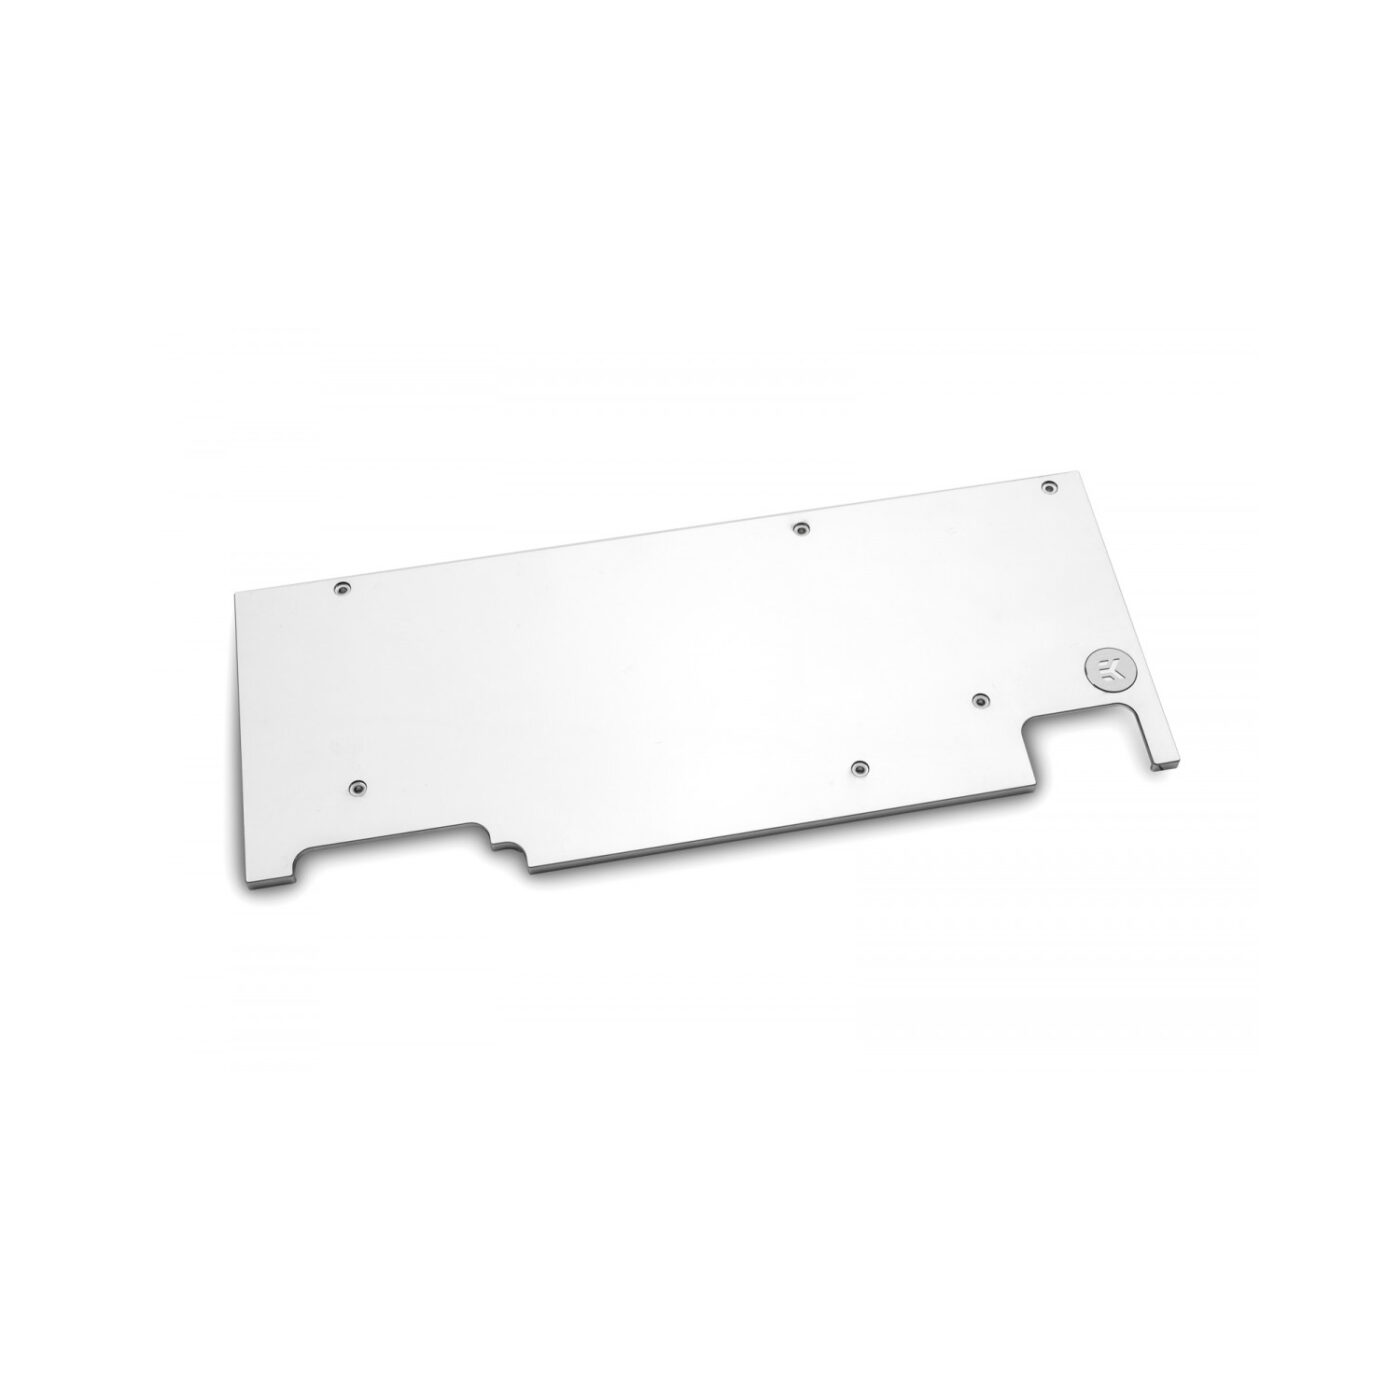 EK-Vector Aorus RTX 2080 Ti Backplate | nickel